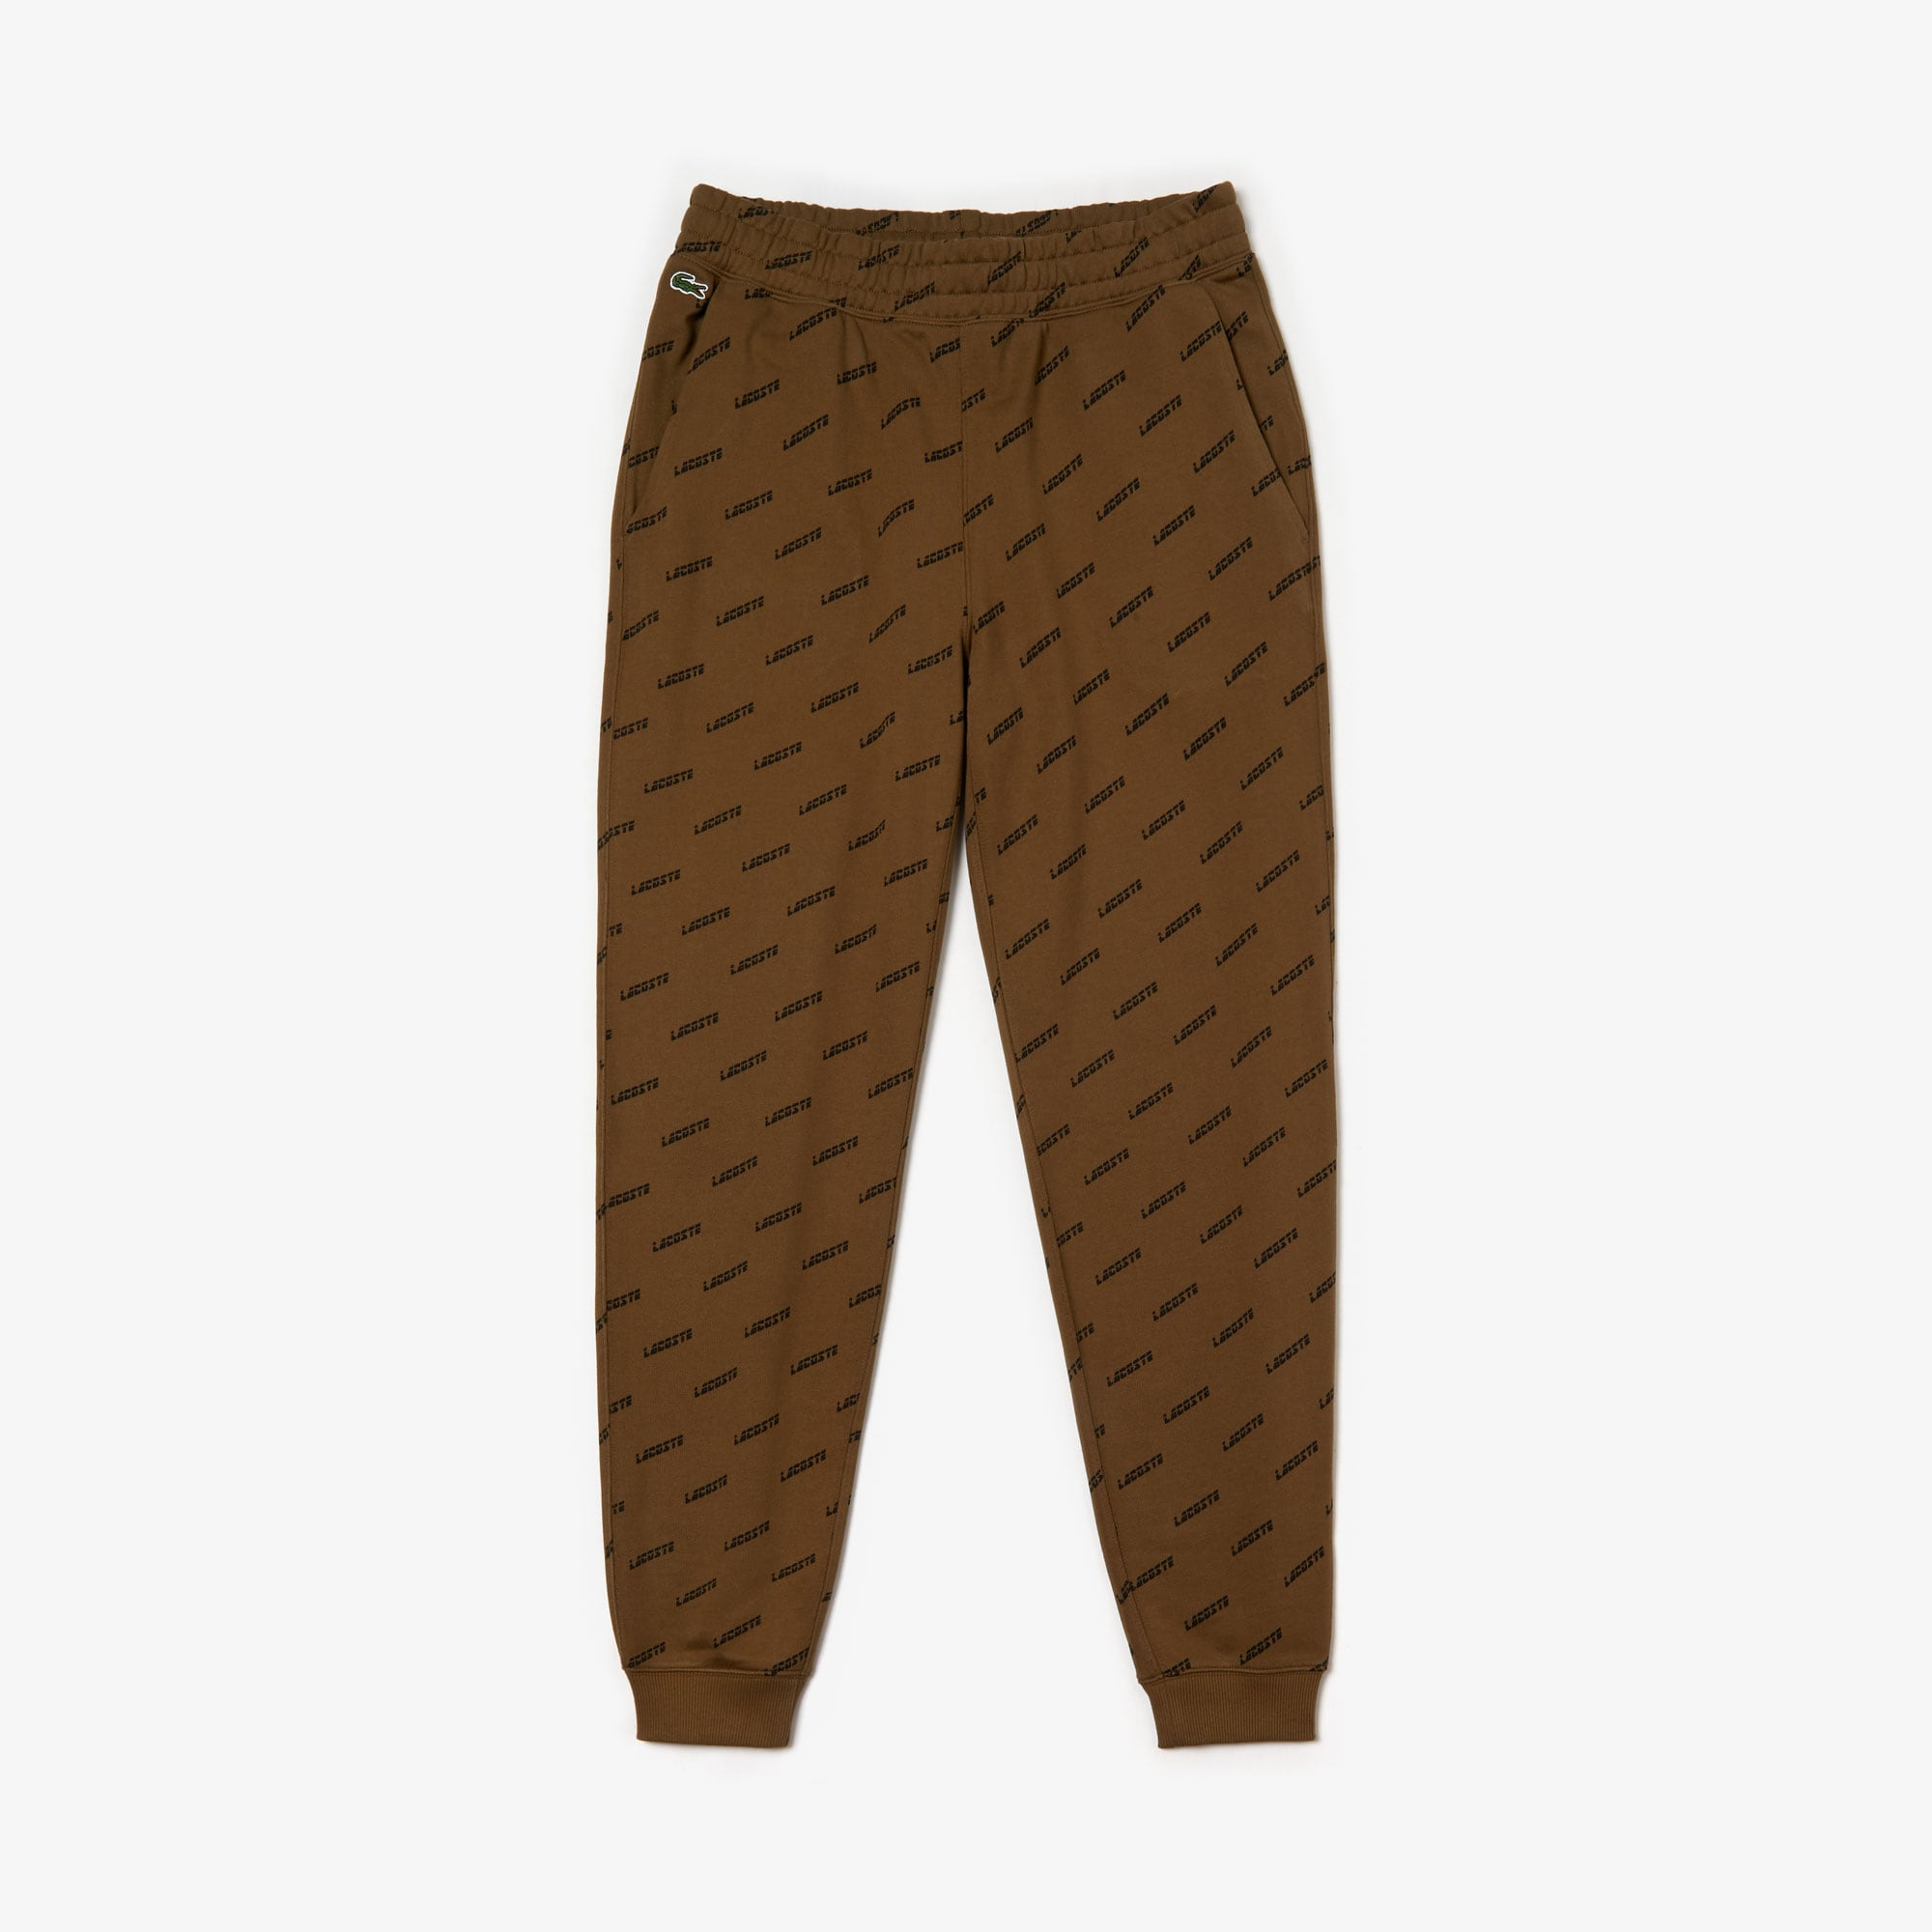 Lacoste Pants MEN'S LIVE PRINT SWEATPANTS